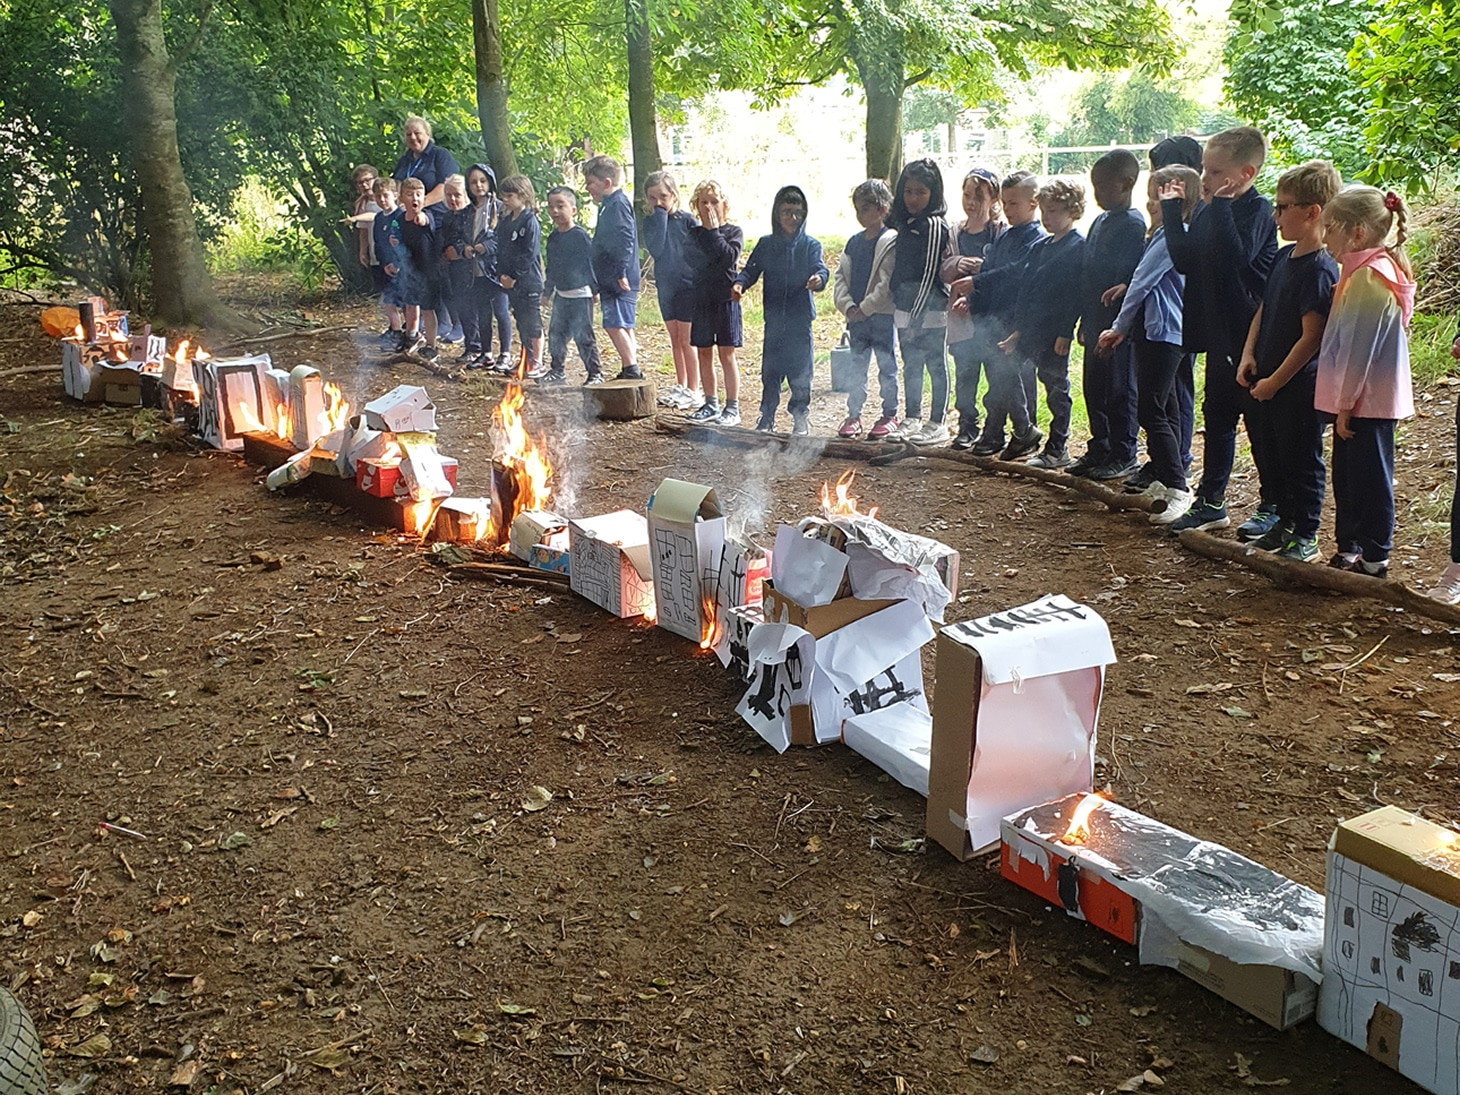 Great Fire of London burning replicas